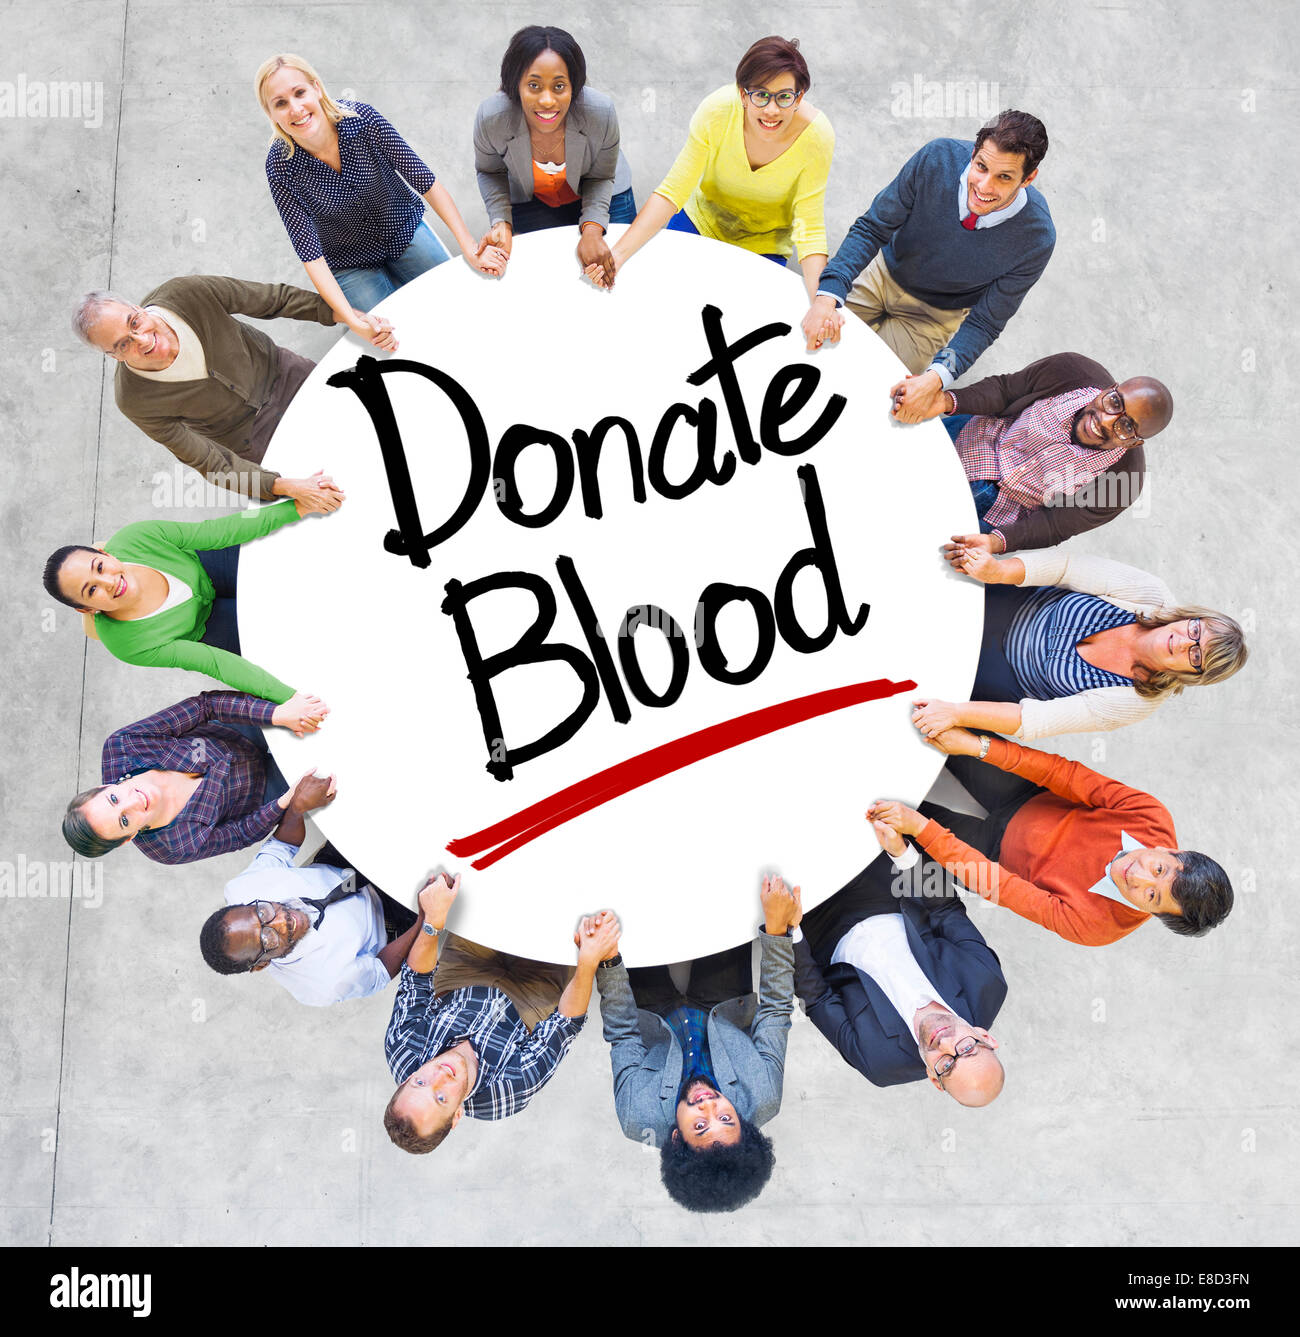 Aerial View of People and Texts Donate Blood - Stock Image